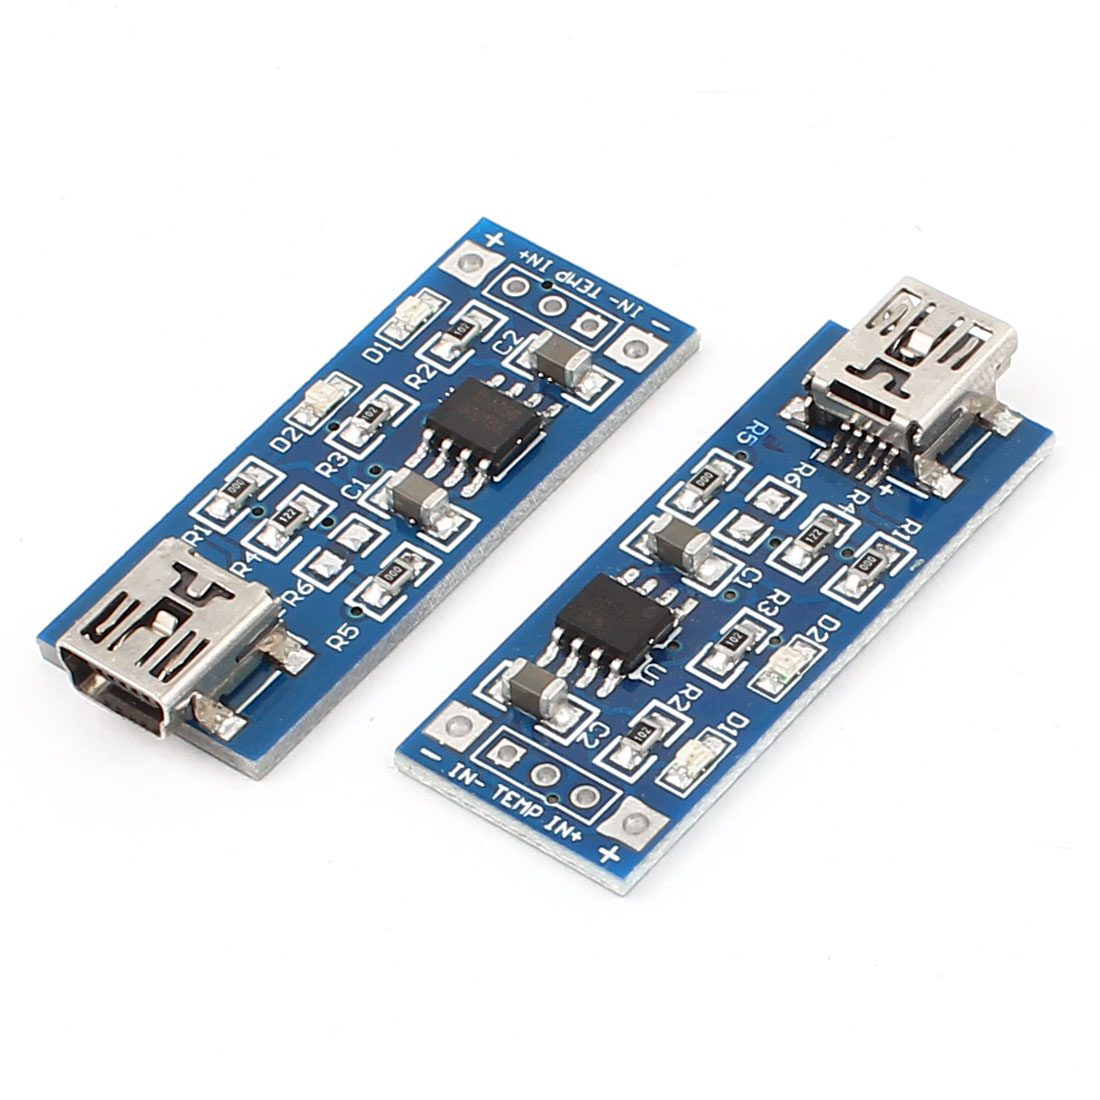 2 Pcs TP4056 5V 1A USB Mini 5Pin Lithium Battery Charging Board Charger Module